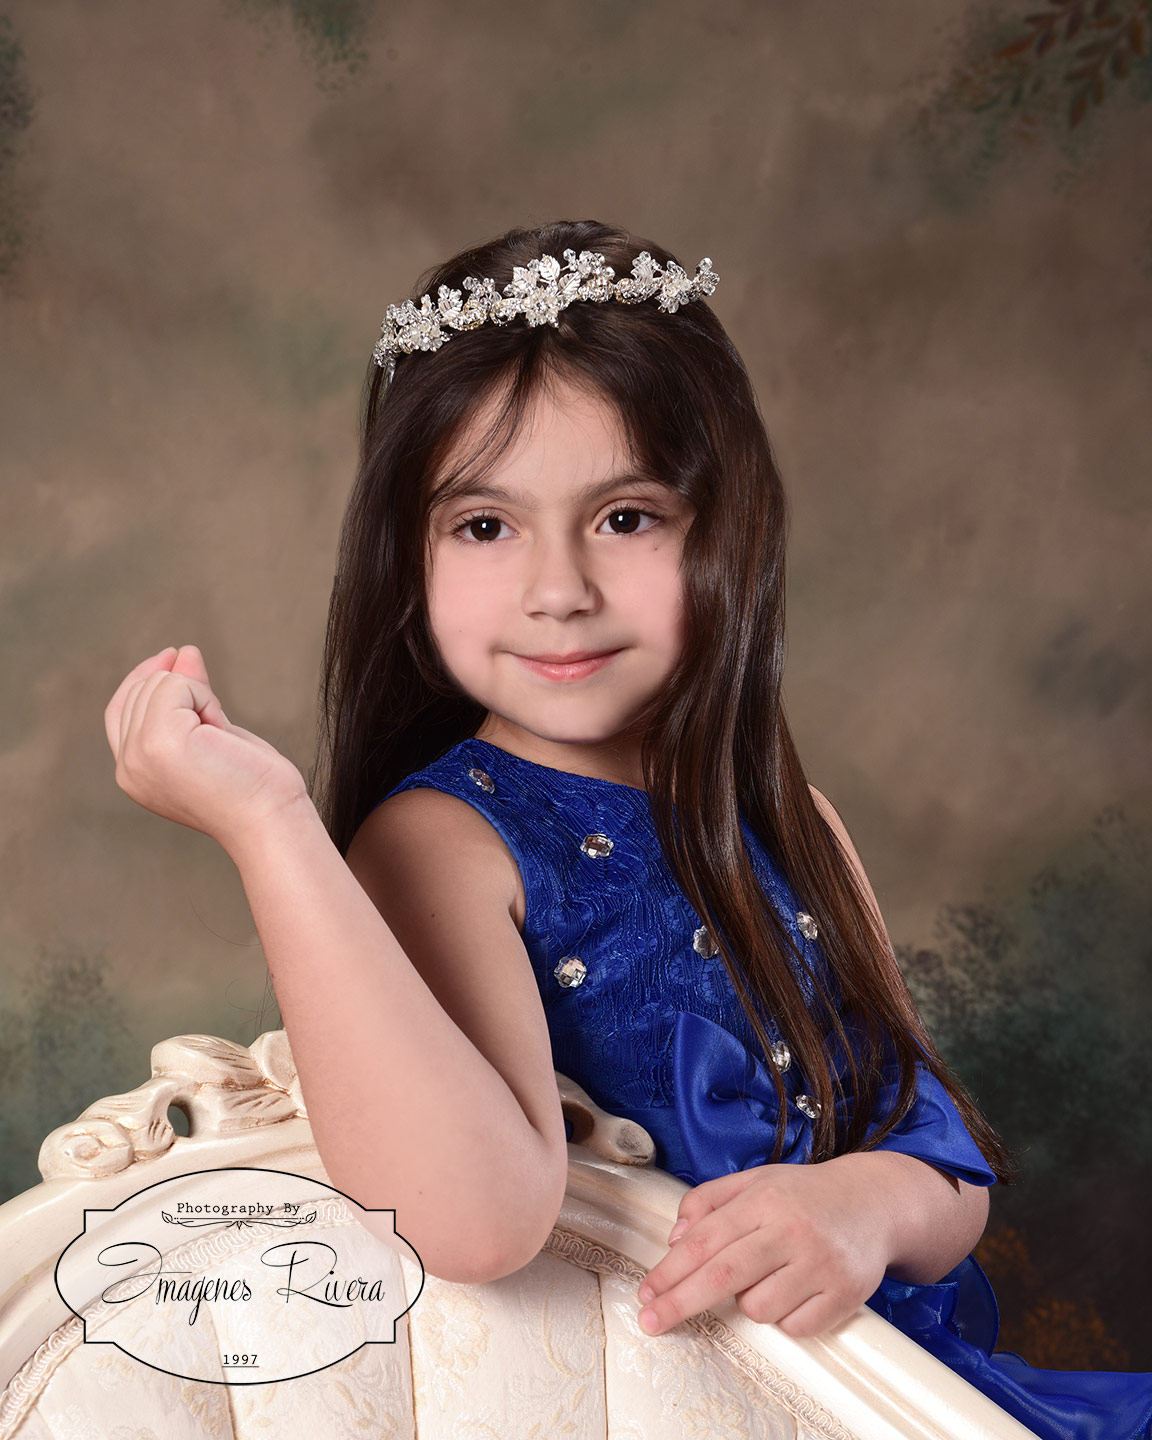 ♥ Little Princess | Children photographer Imagenes Rivera Miami ♥